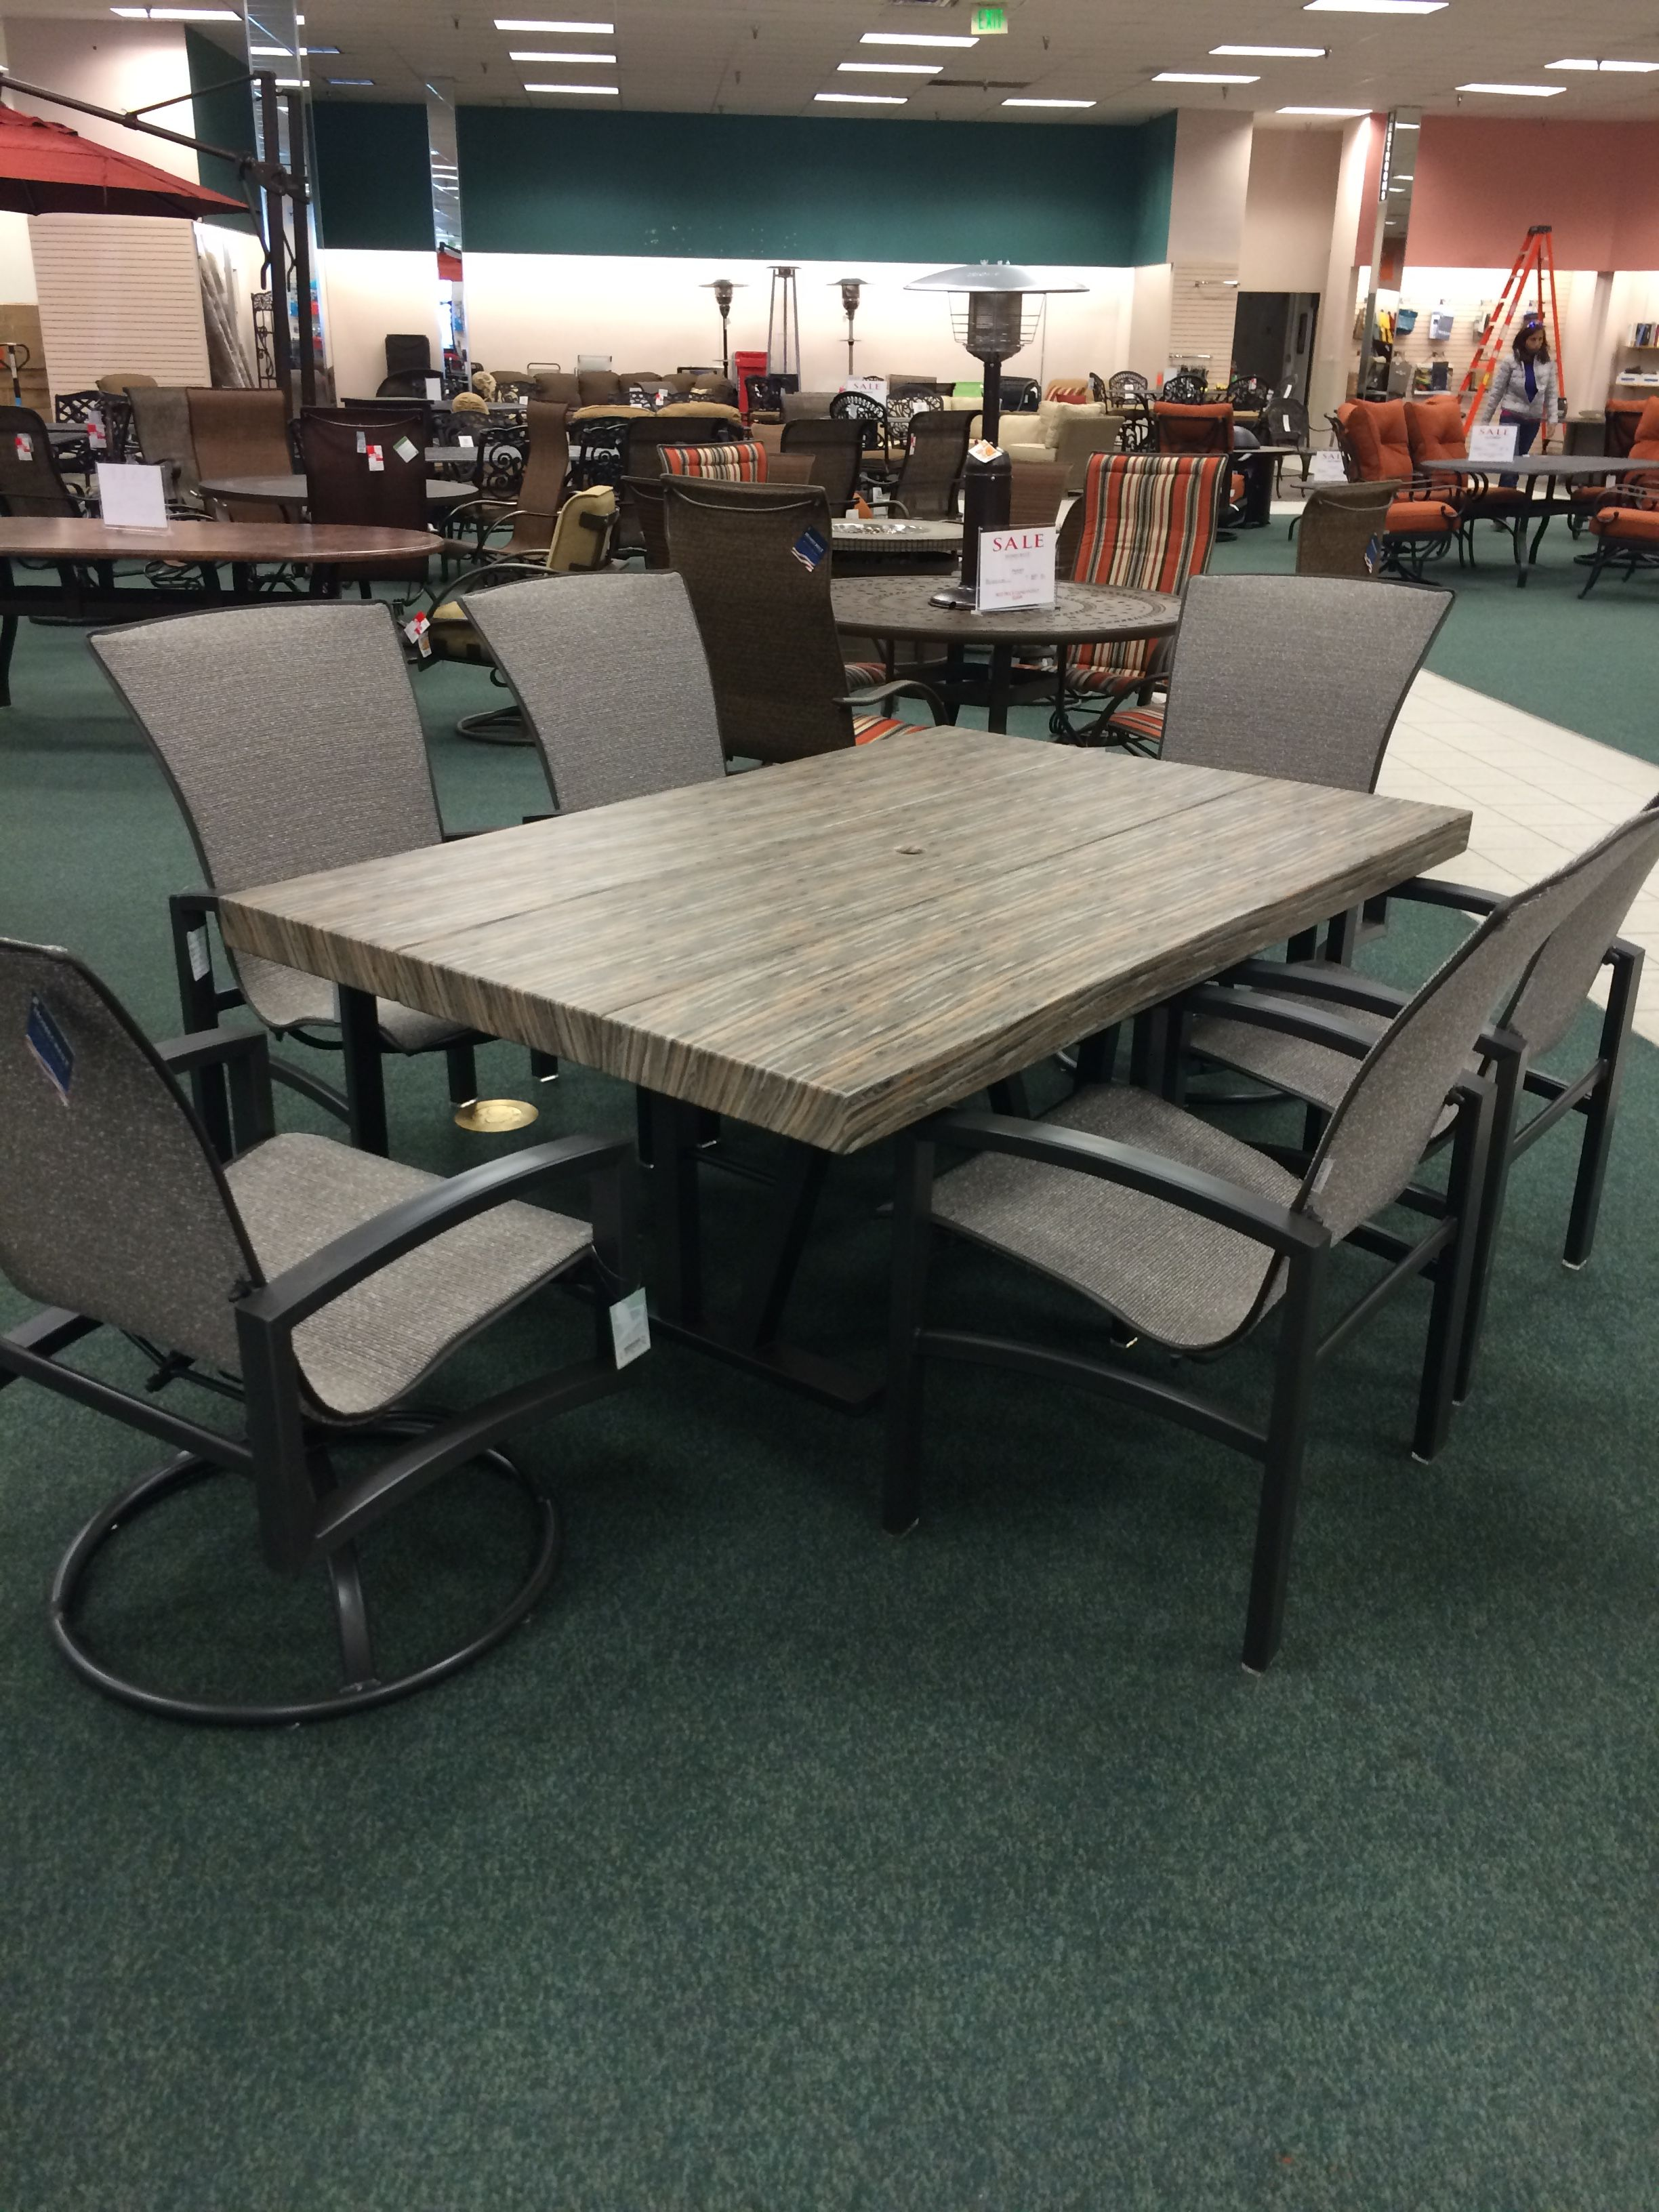 christy sports patio furniture in littleton, co is